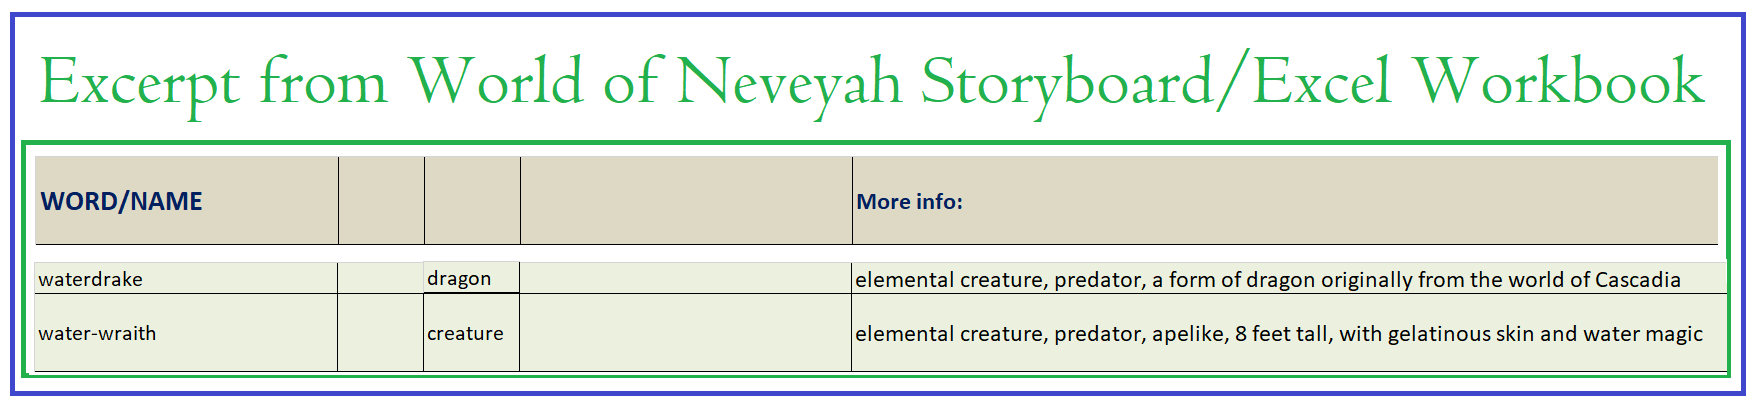 Excerpt from World of Neveyah Storyboard Glossary,